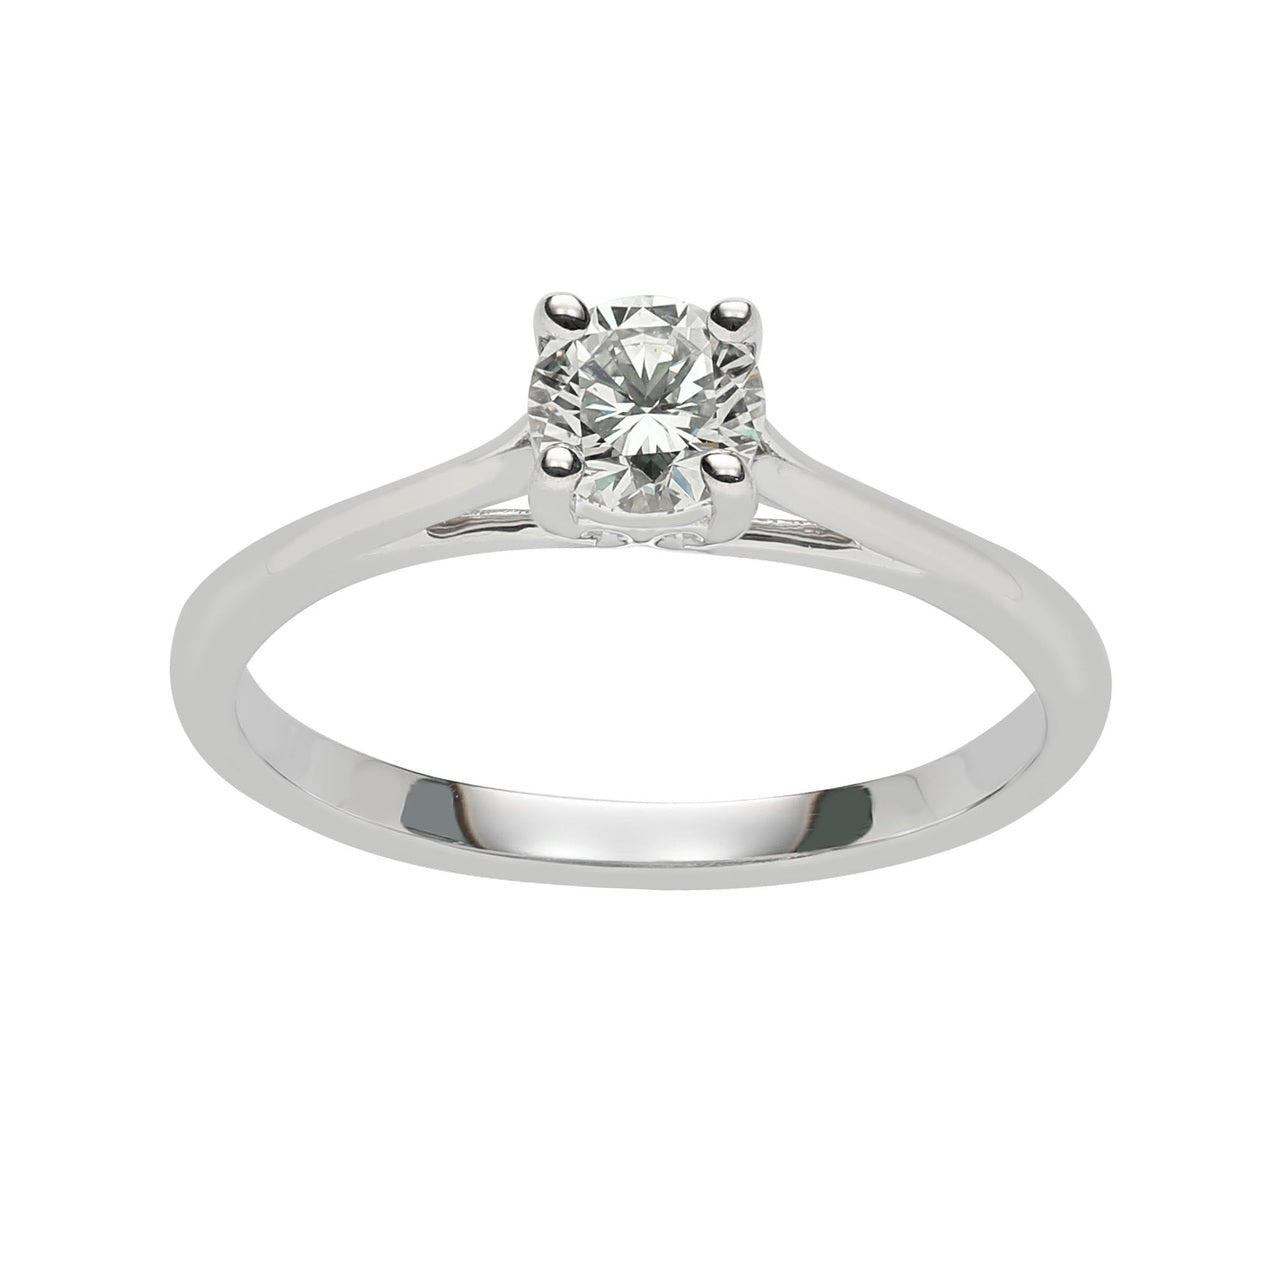 Fink's 14K White Gold Solitaire Diamond Cathedral Engagement Ring